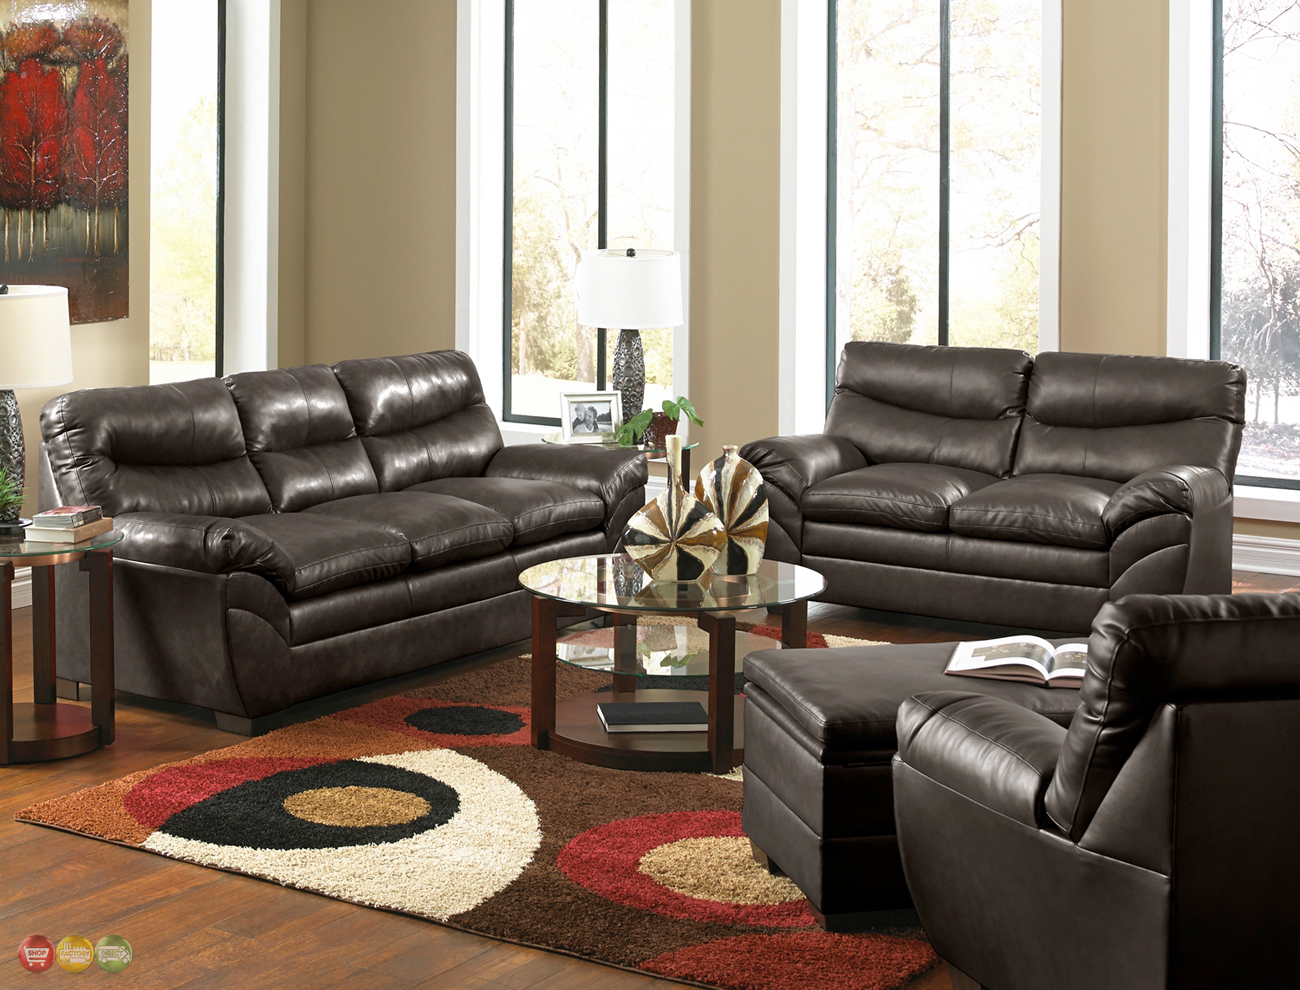 Casual Contemporary Brown Bonded Leather Sofa Set Living Room Furniture